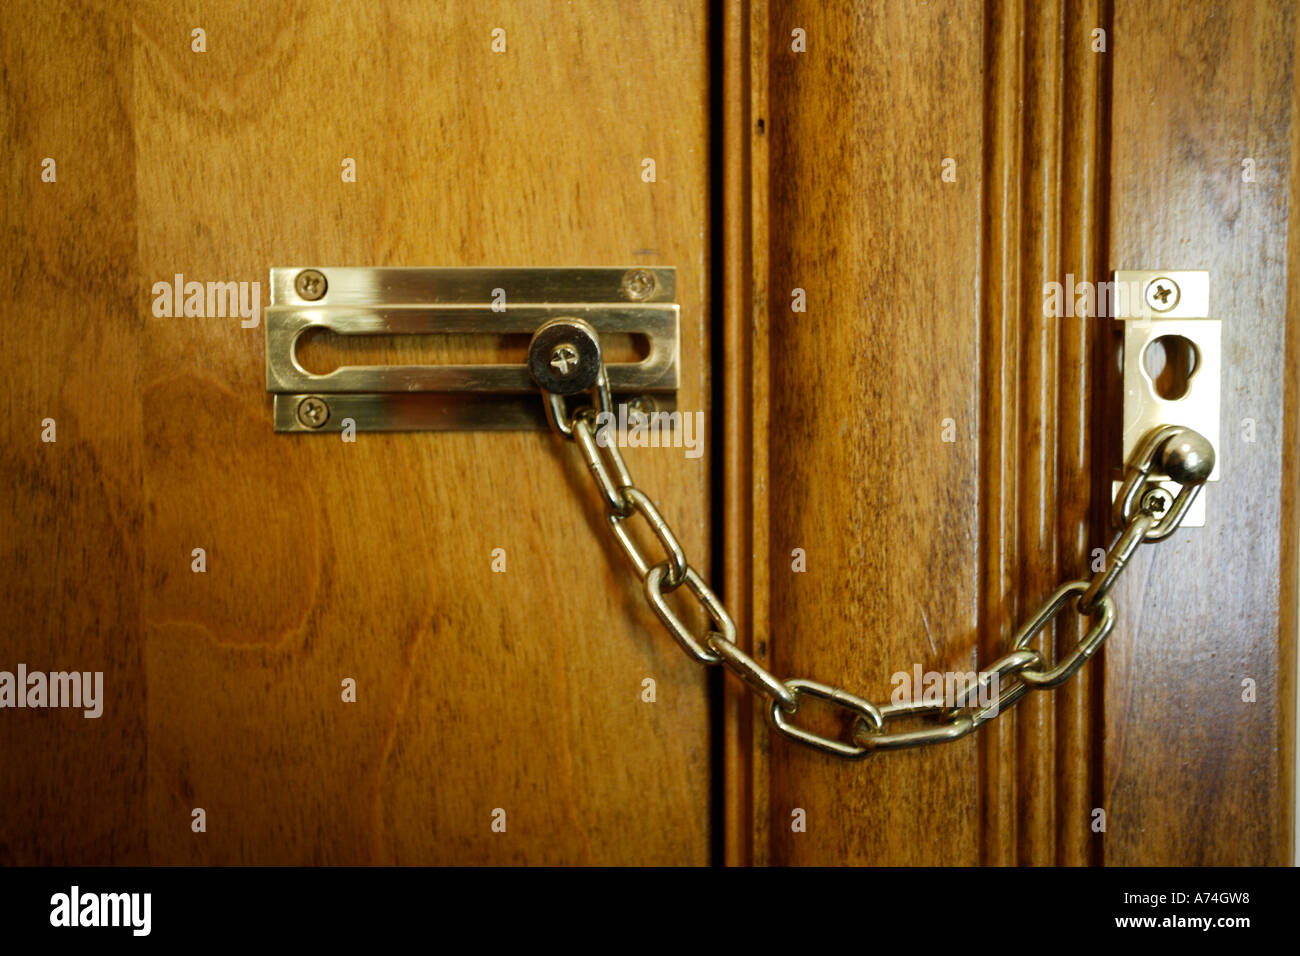 Le Meilleur Locked Door With Chain Lock Stock Photo Royalty Free Ce Mois Ci